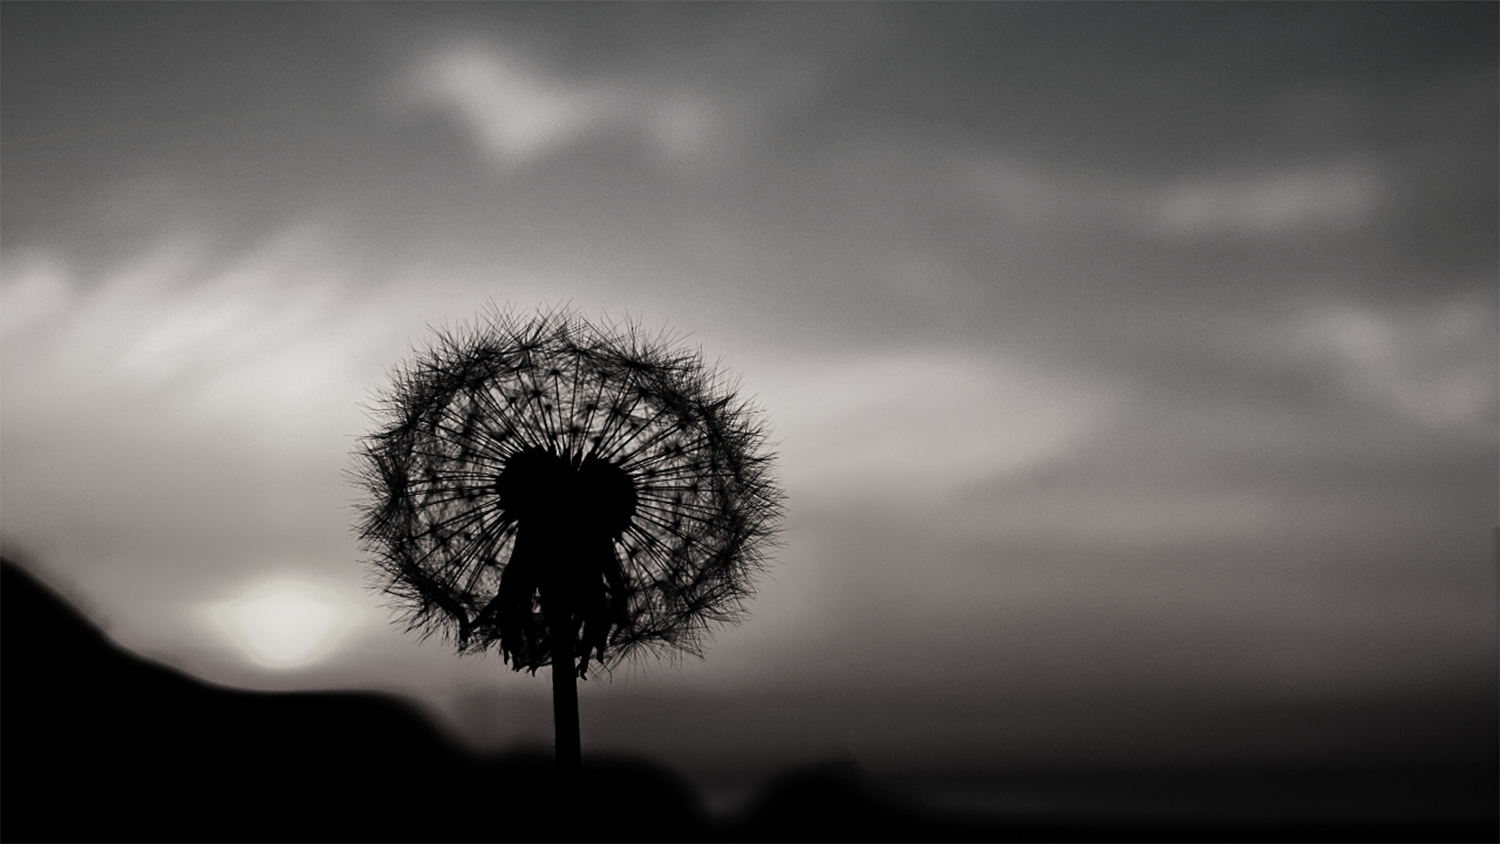 dandelion in black and white background